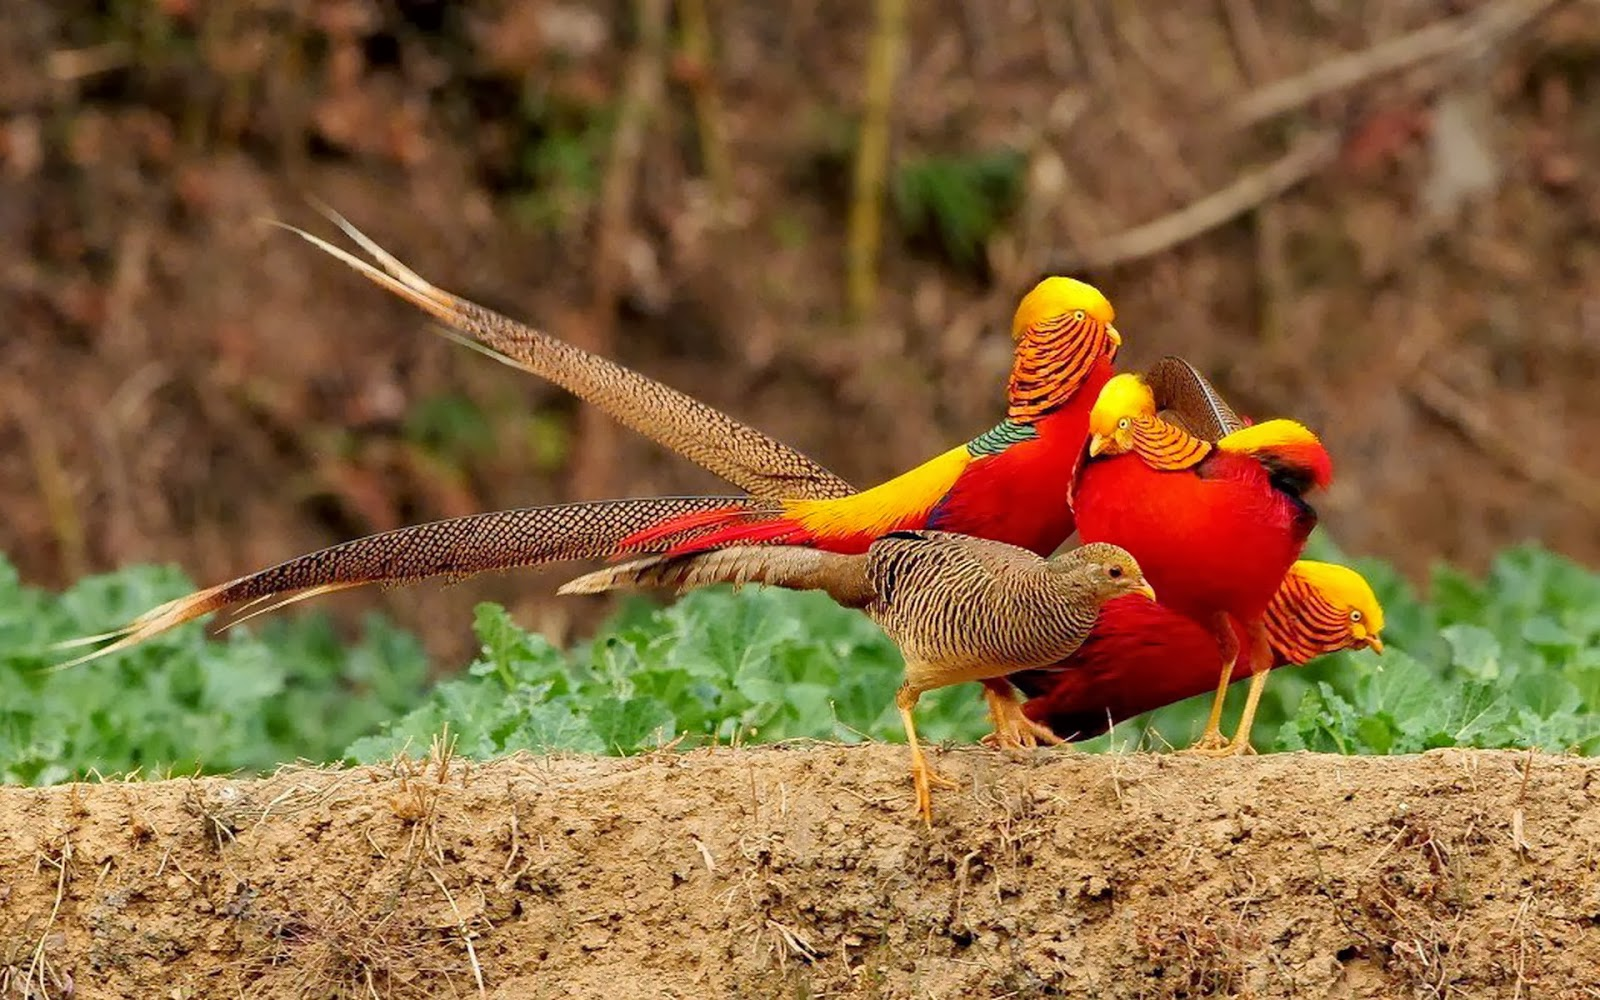 Beautiful Quotes And Inspirational Wallpapers Hd Golden Pheasant Birds Hd Wallpapers Angelic Hugs